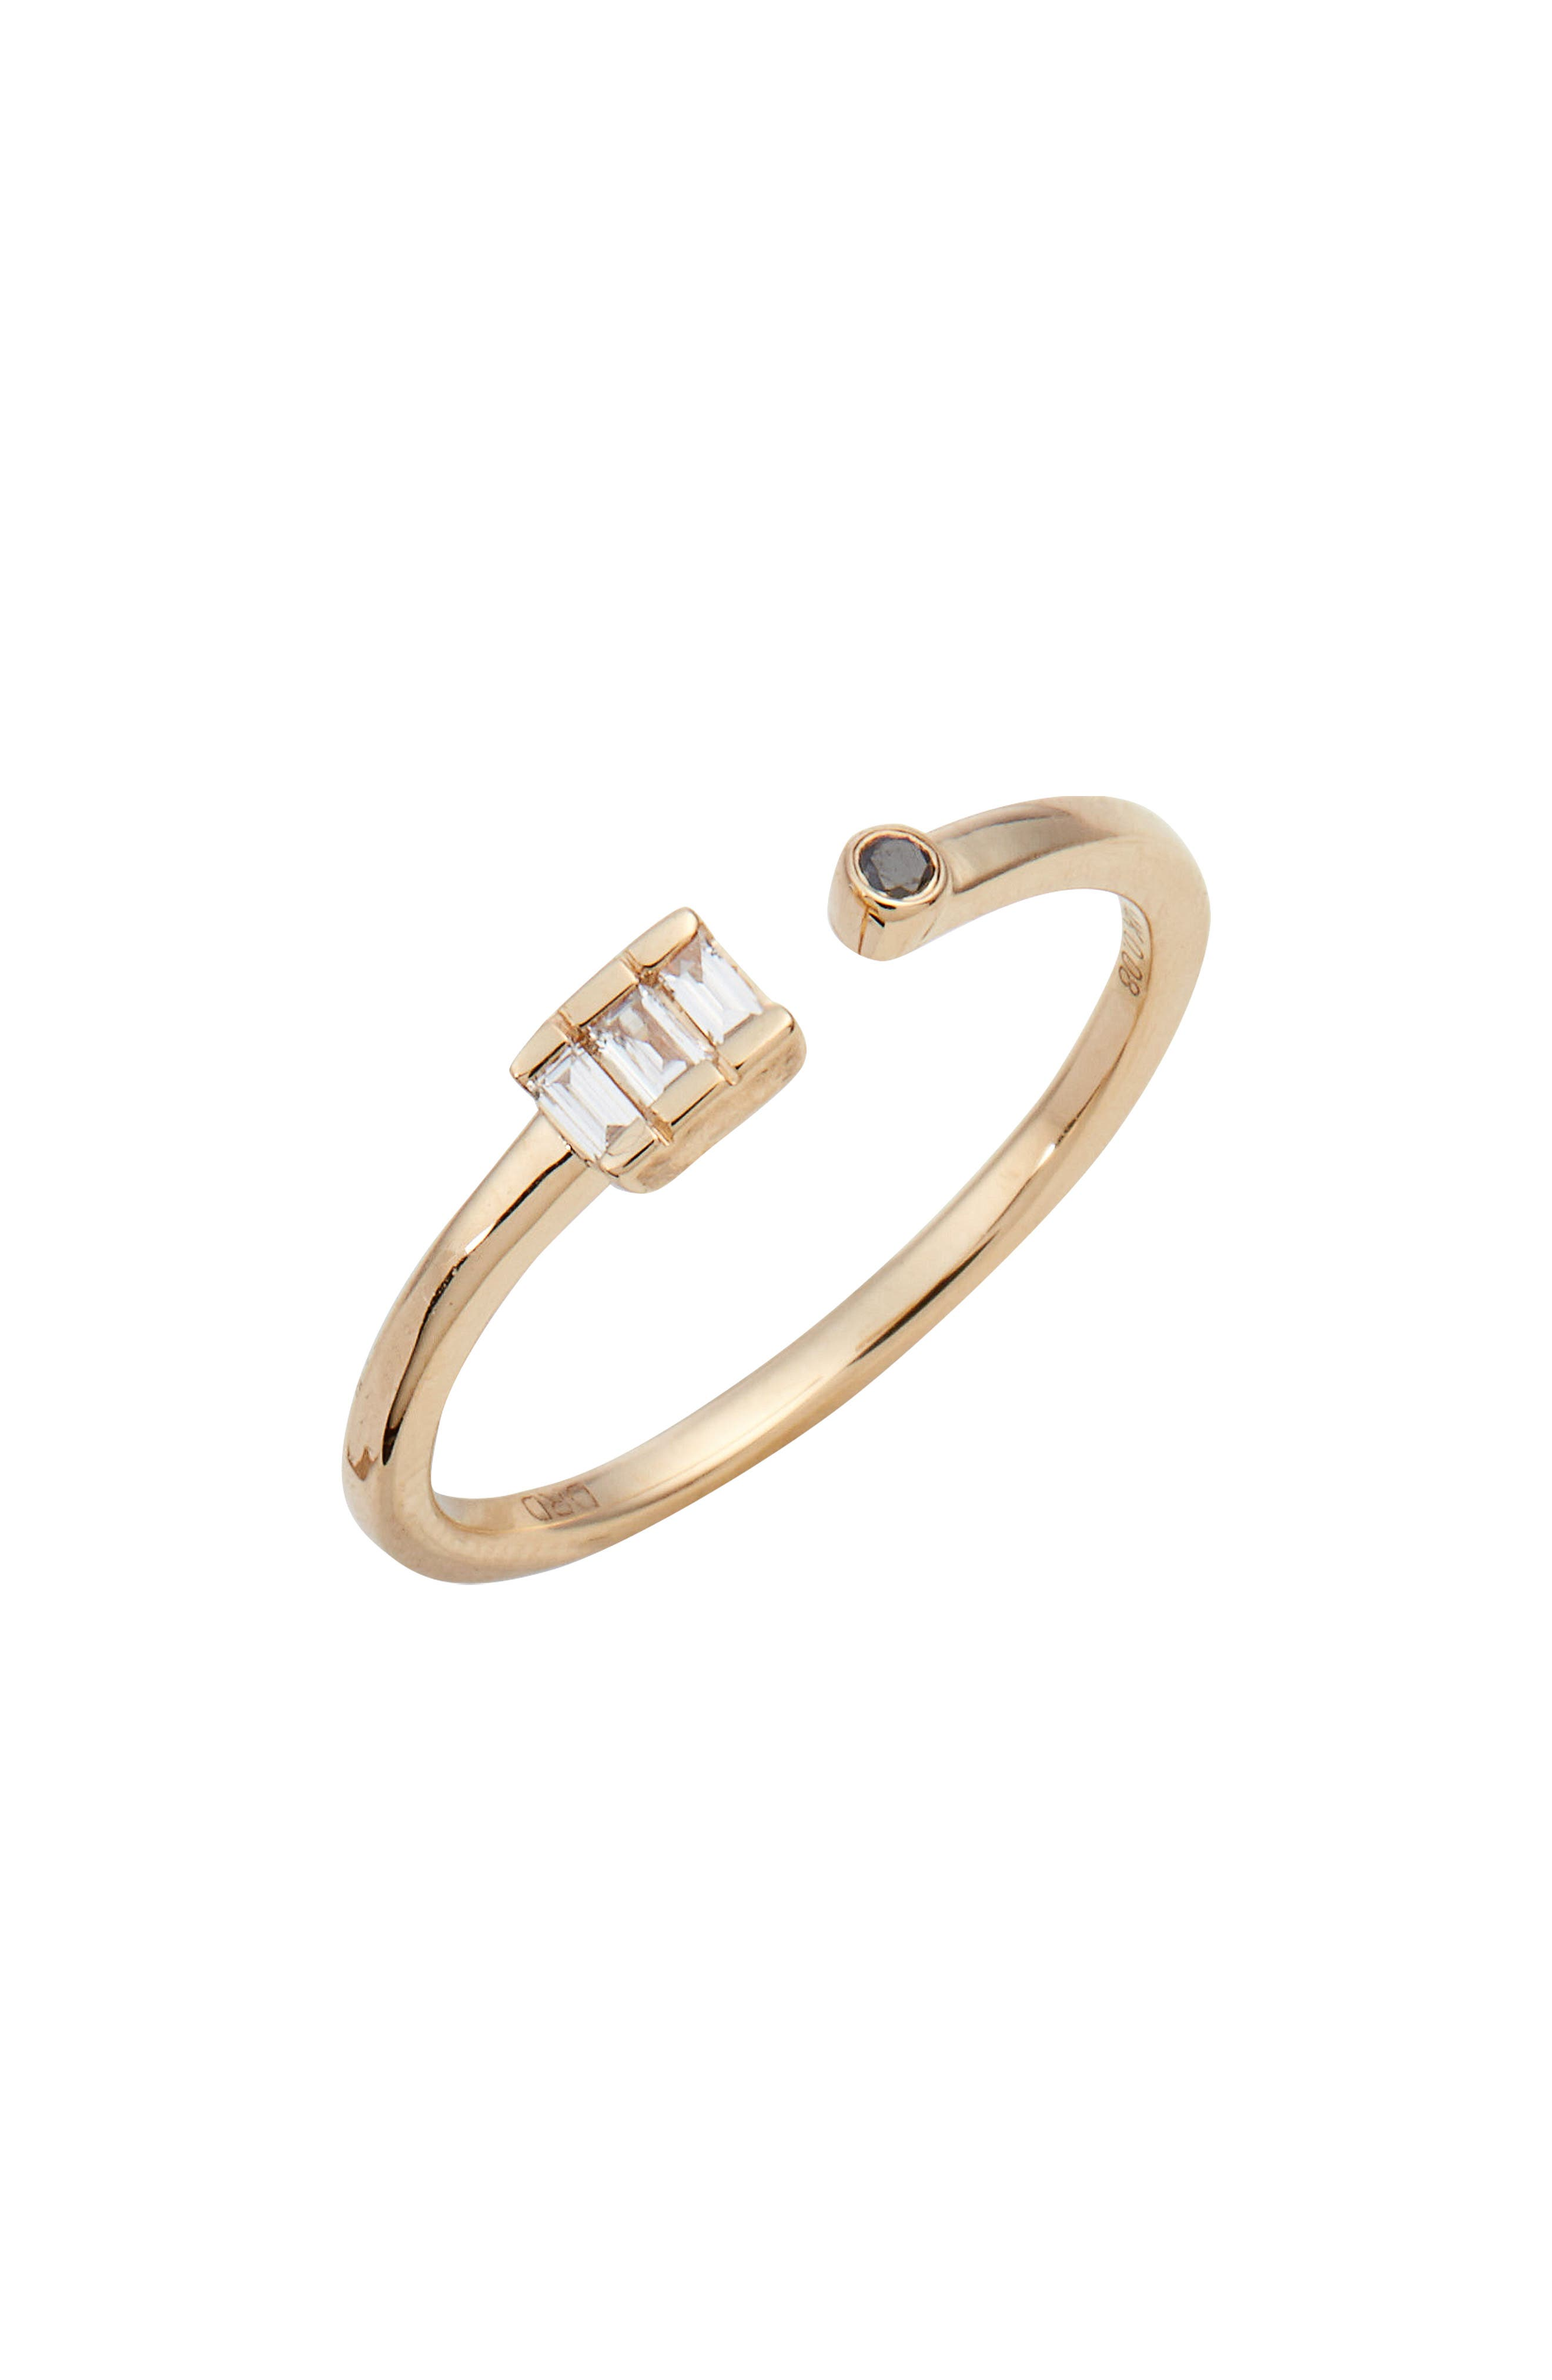 Sadie Diamond Bypass Ring,                         Main,                         color, Yellow Gold